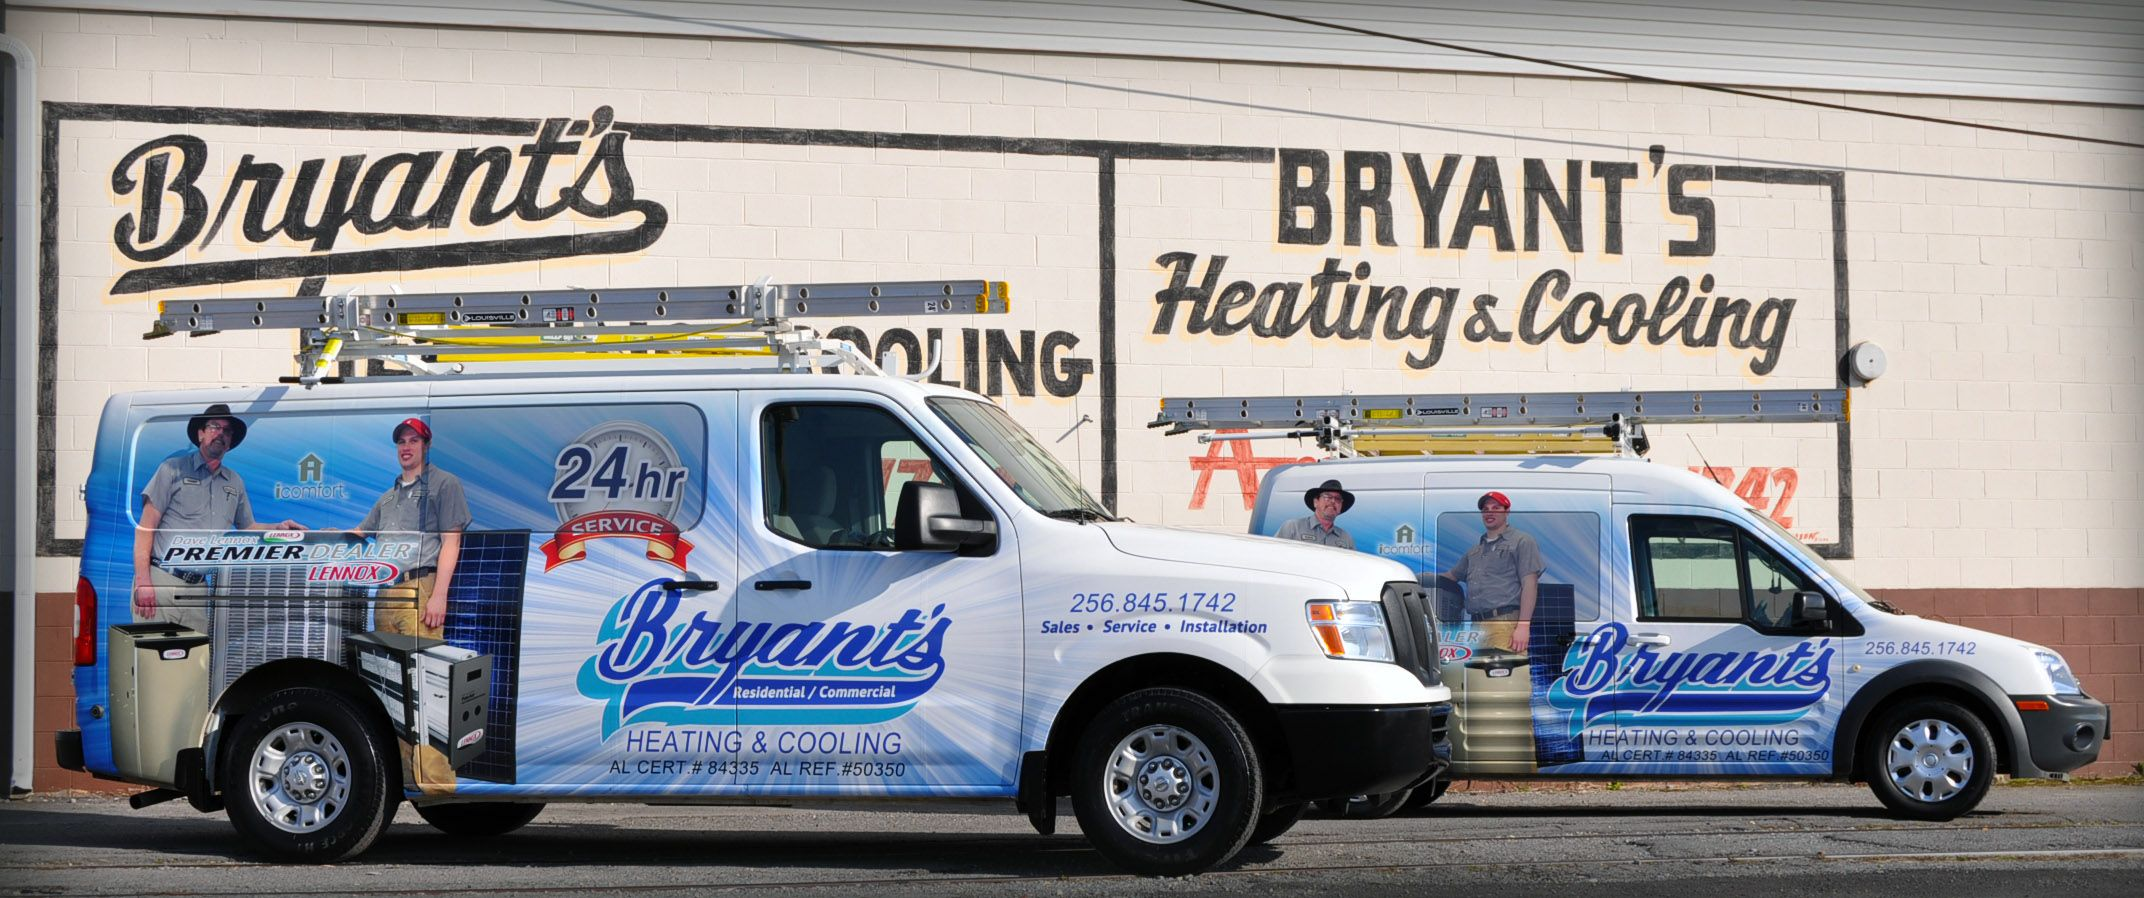 Bryant S Heating And Cooling Fleet Wraps Vehiclewrap Wrap Graphicdesign Vanwrap Fleet Heating And Cooling Car Wrap